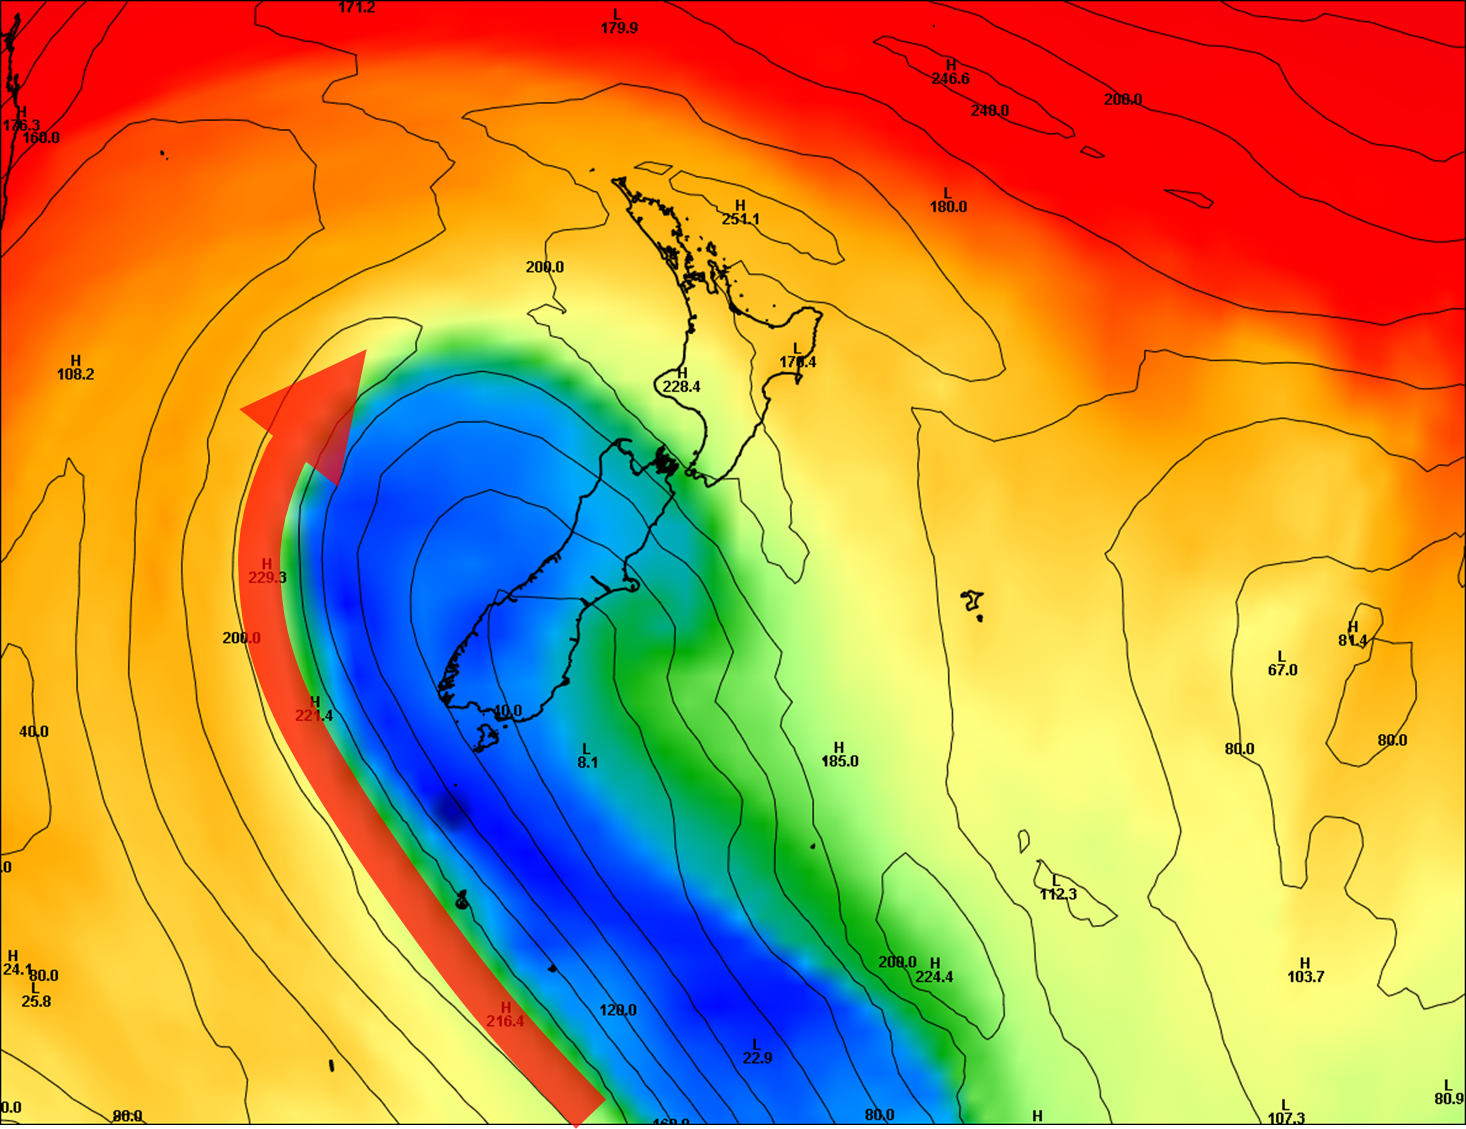 Polar jet location midday Monday 13 April